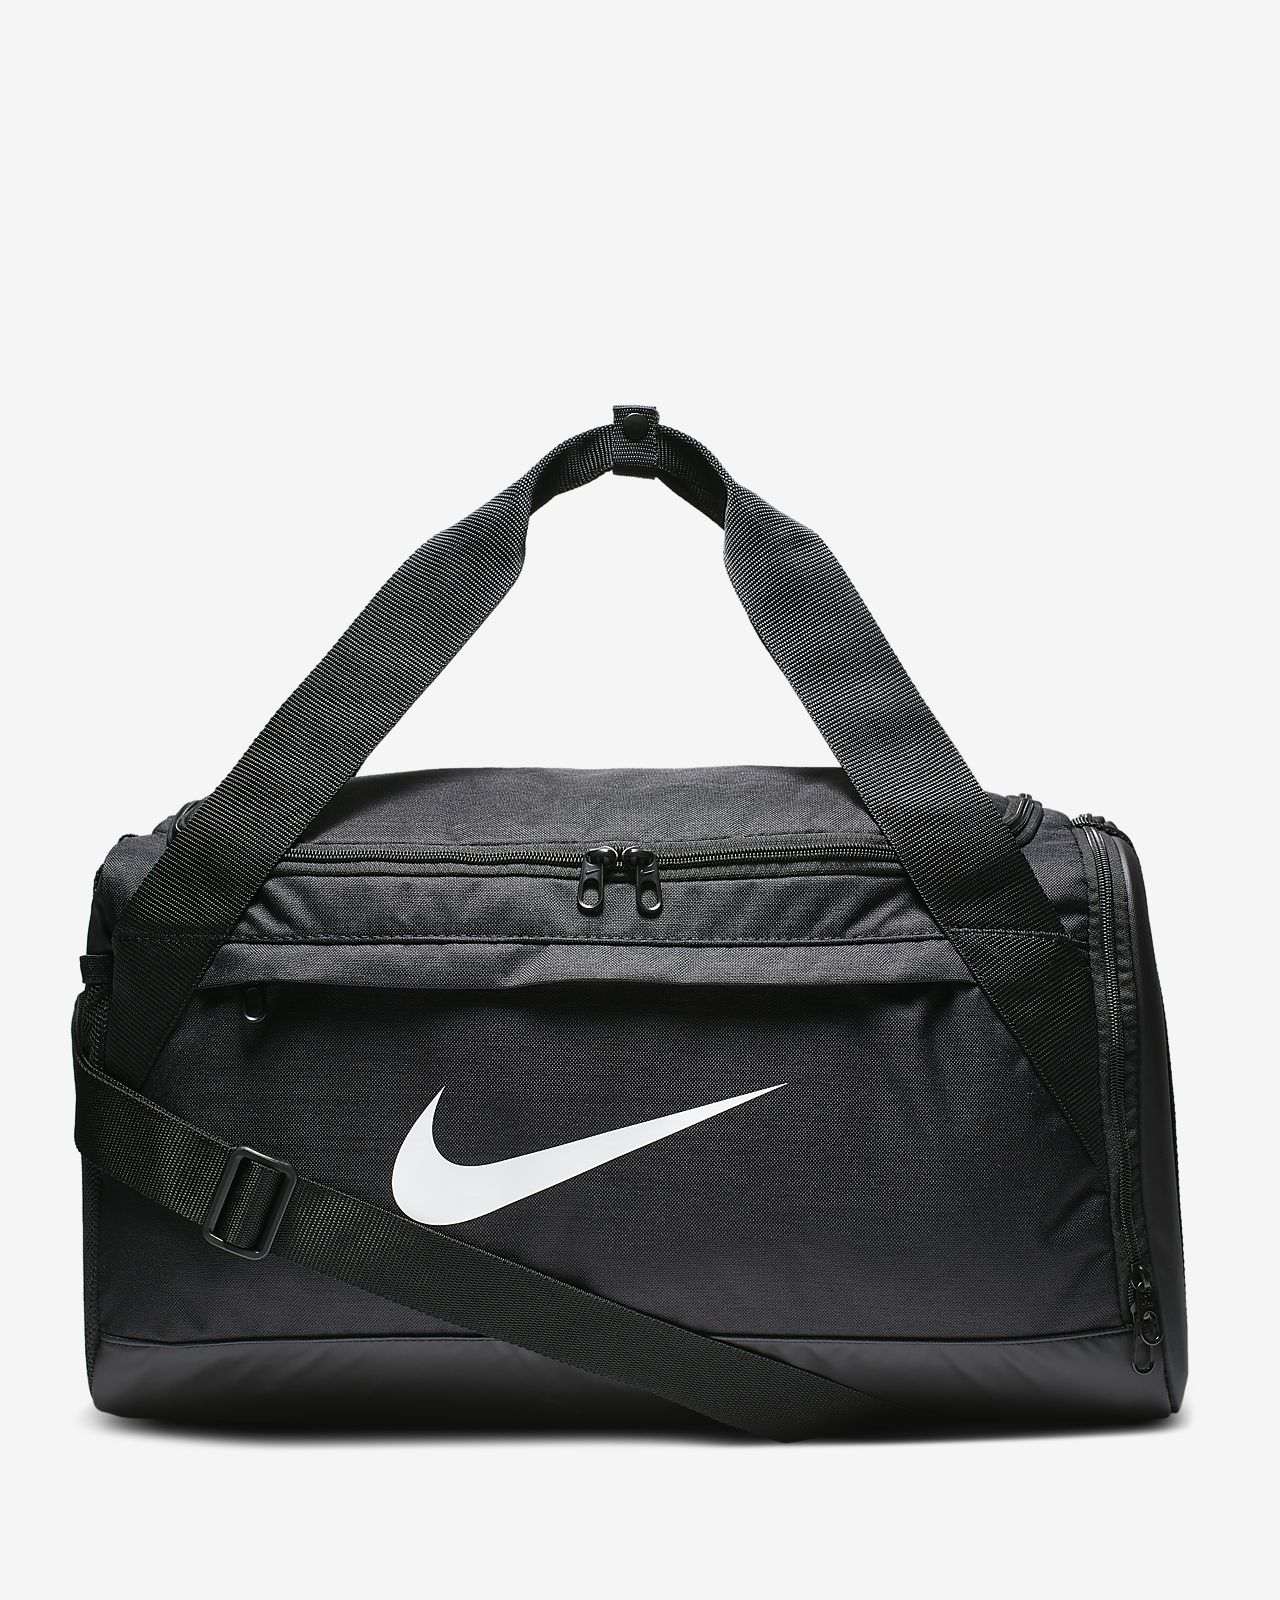 93d2ea0dc7a Nike Brasilia Training Duffel Bag (Small). Nike.com